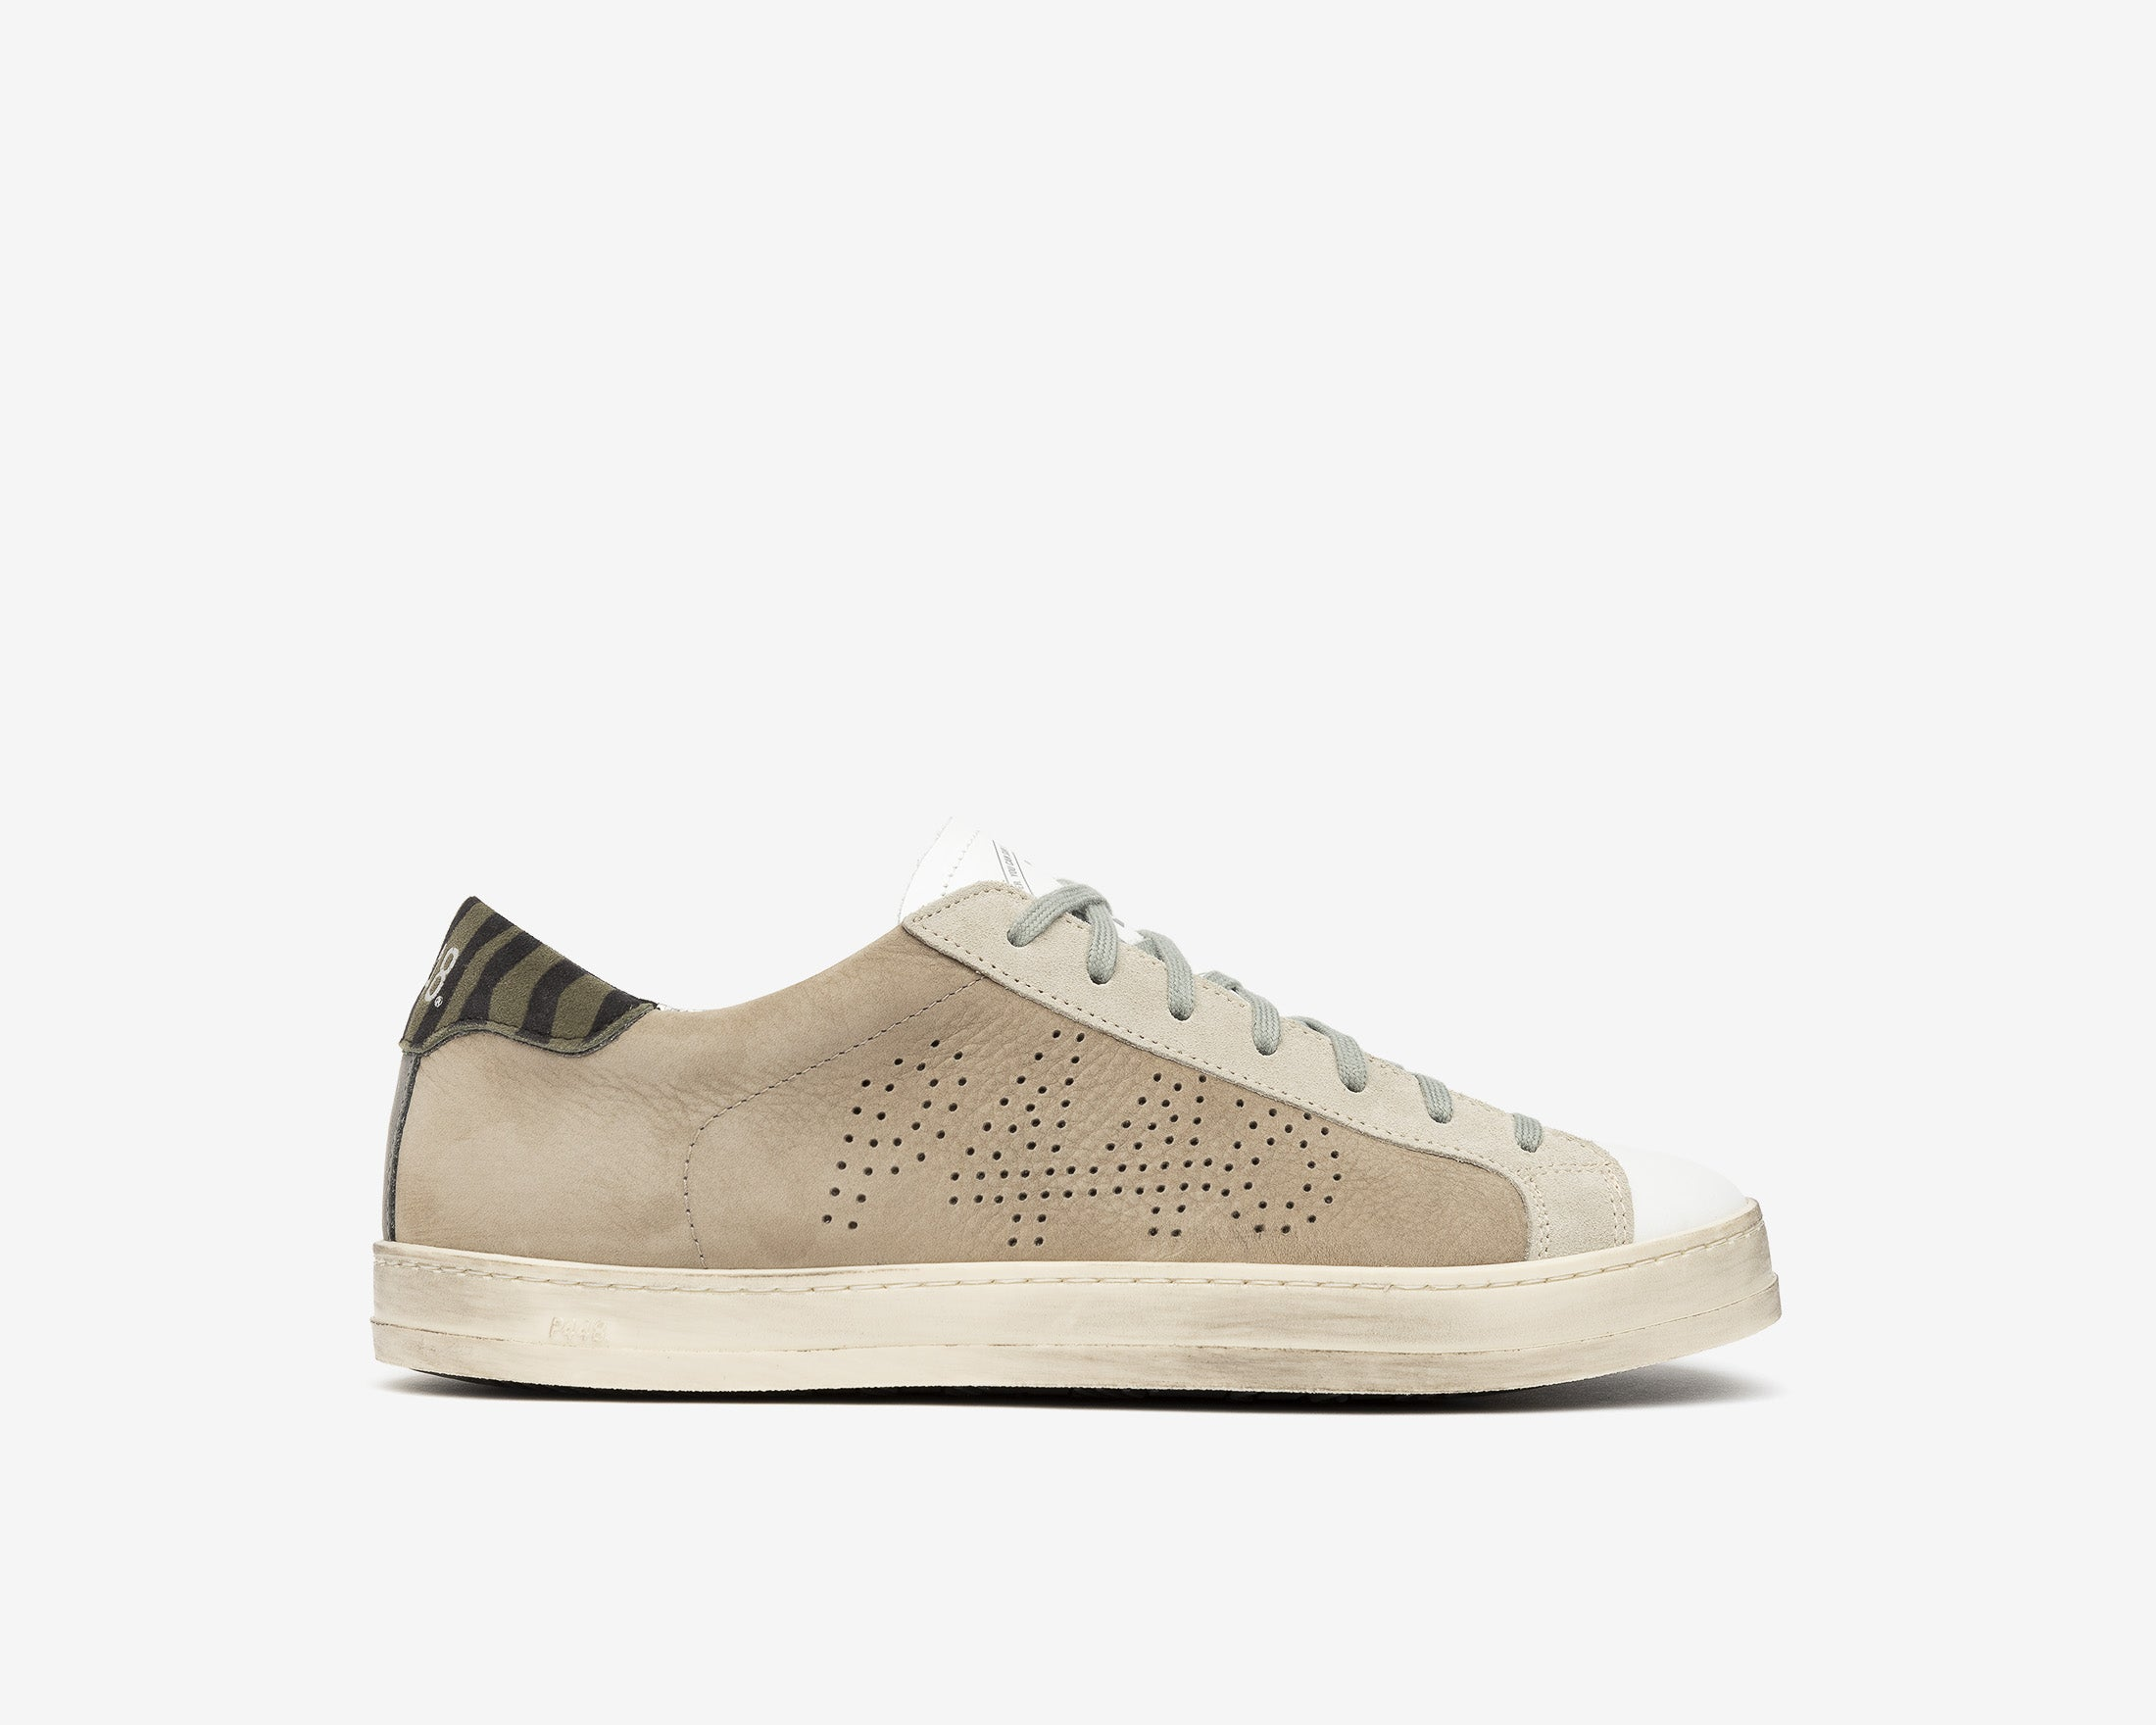 John Low-Top Sneaker in Gray Nubuck - Profile